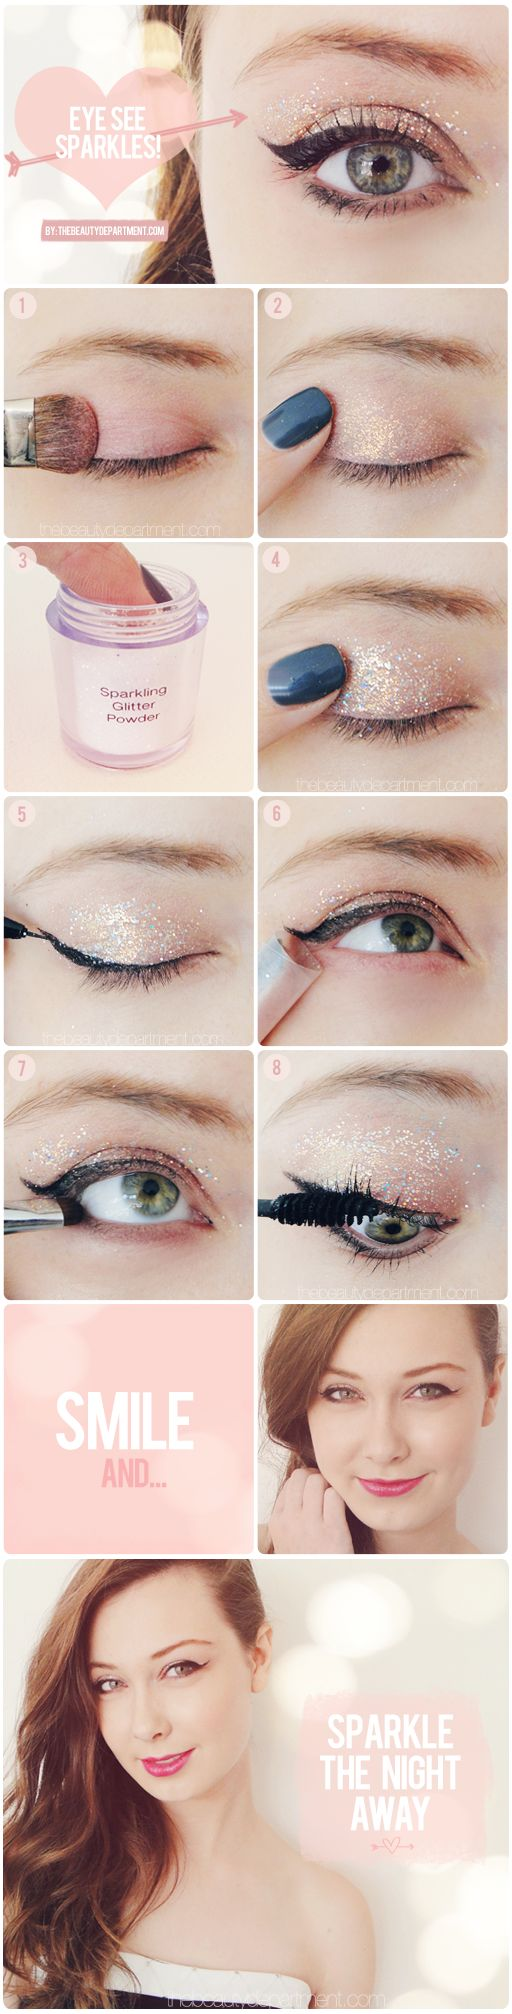 sparkle eye shadow tutorial